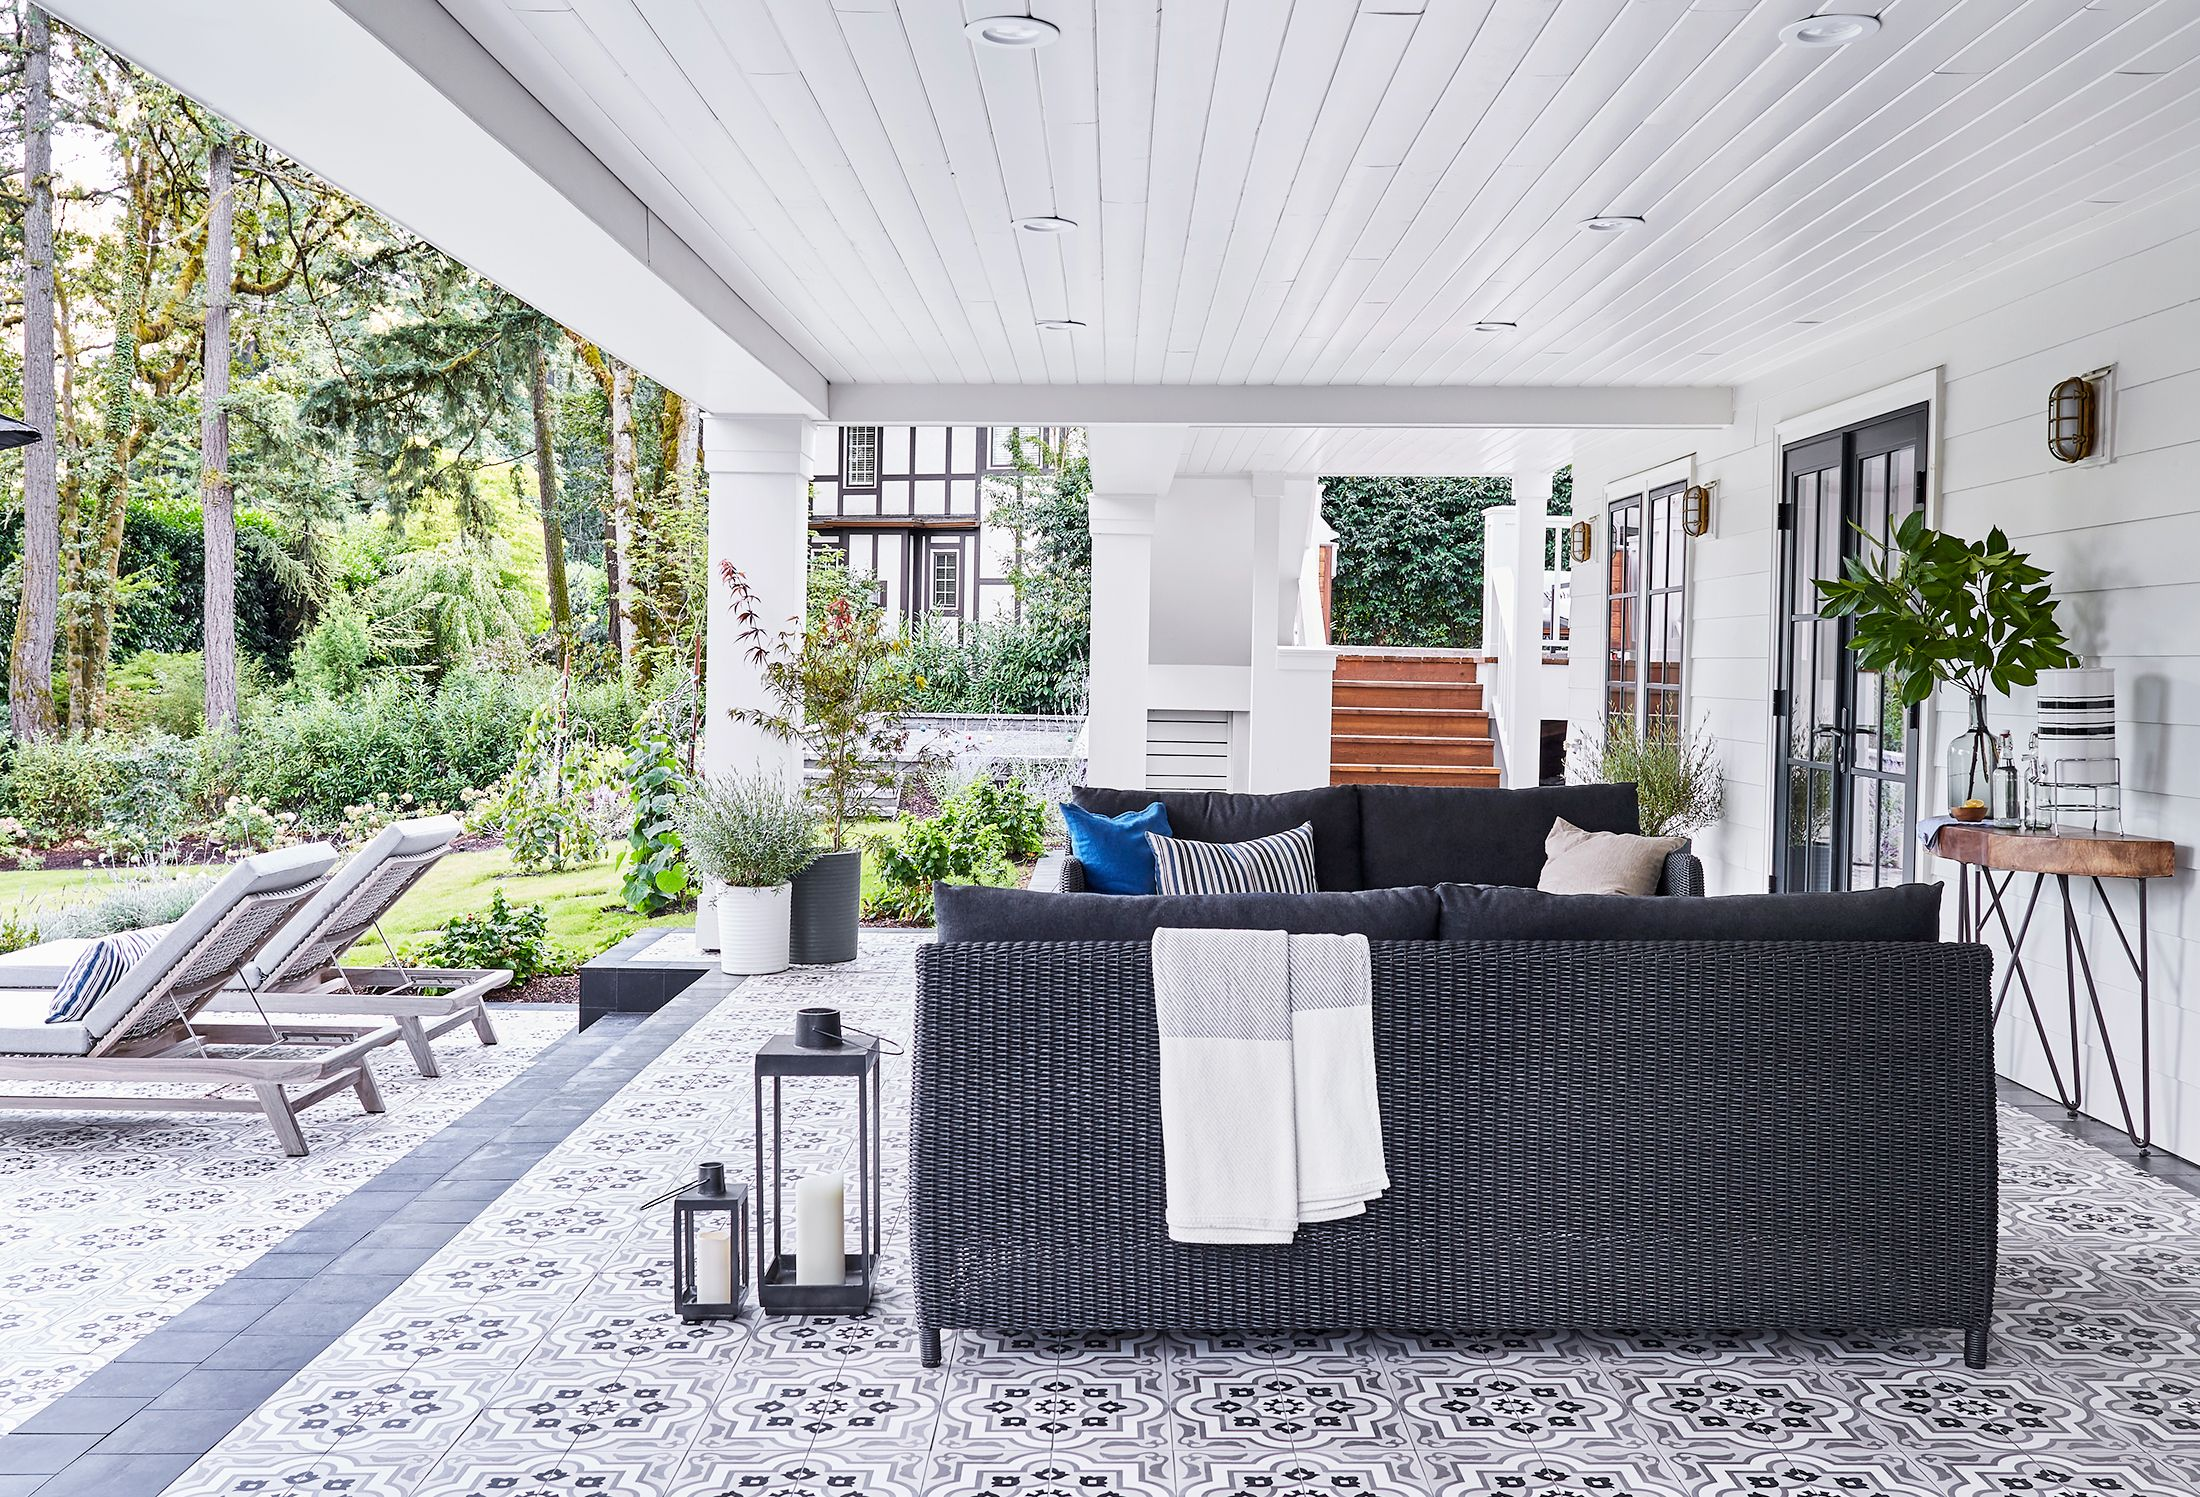 55 Best Patio Ideas for 2020 - Stylish Outdoor Patio ... on Backyard Patio Extension Ideas id=51416